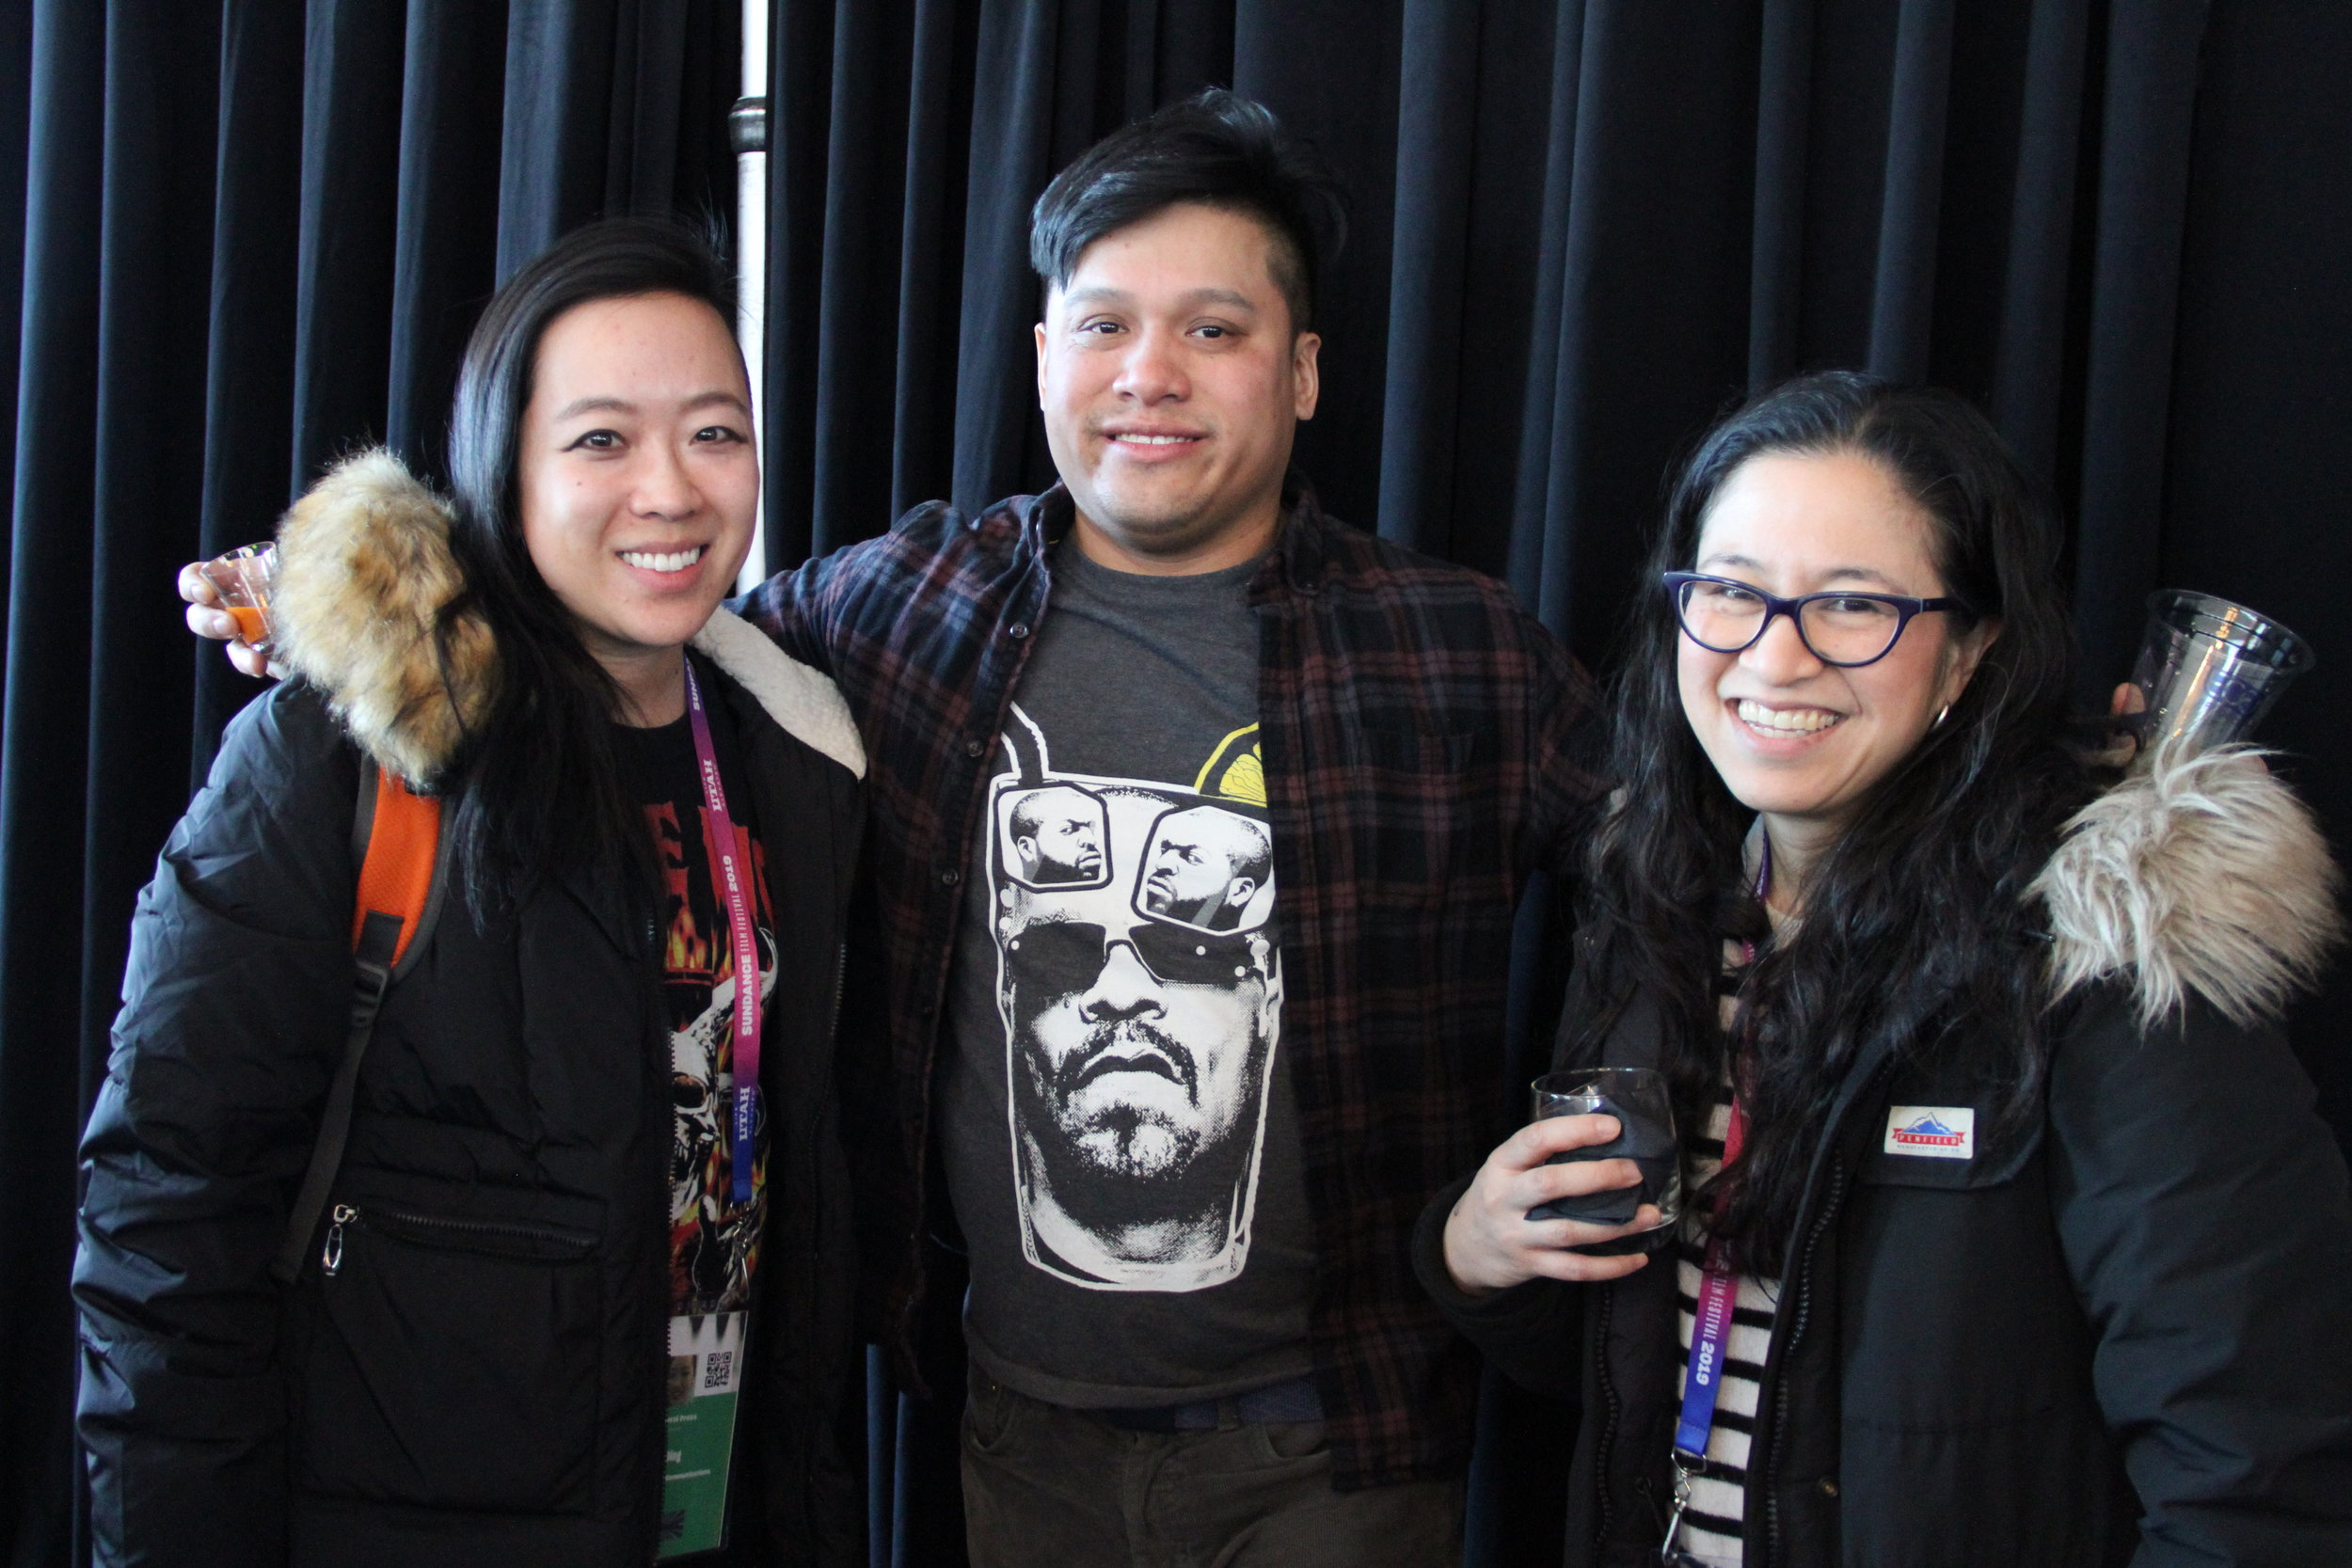 At the RYOT & VICE Studios Lounge, documentary/transmedia filmmaker Sue Ding greets Kenny Penguin and journalist Ann Marie Baldonado. (Photo: Abraham Ferrer/Visual Communications Photographic Archive)